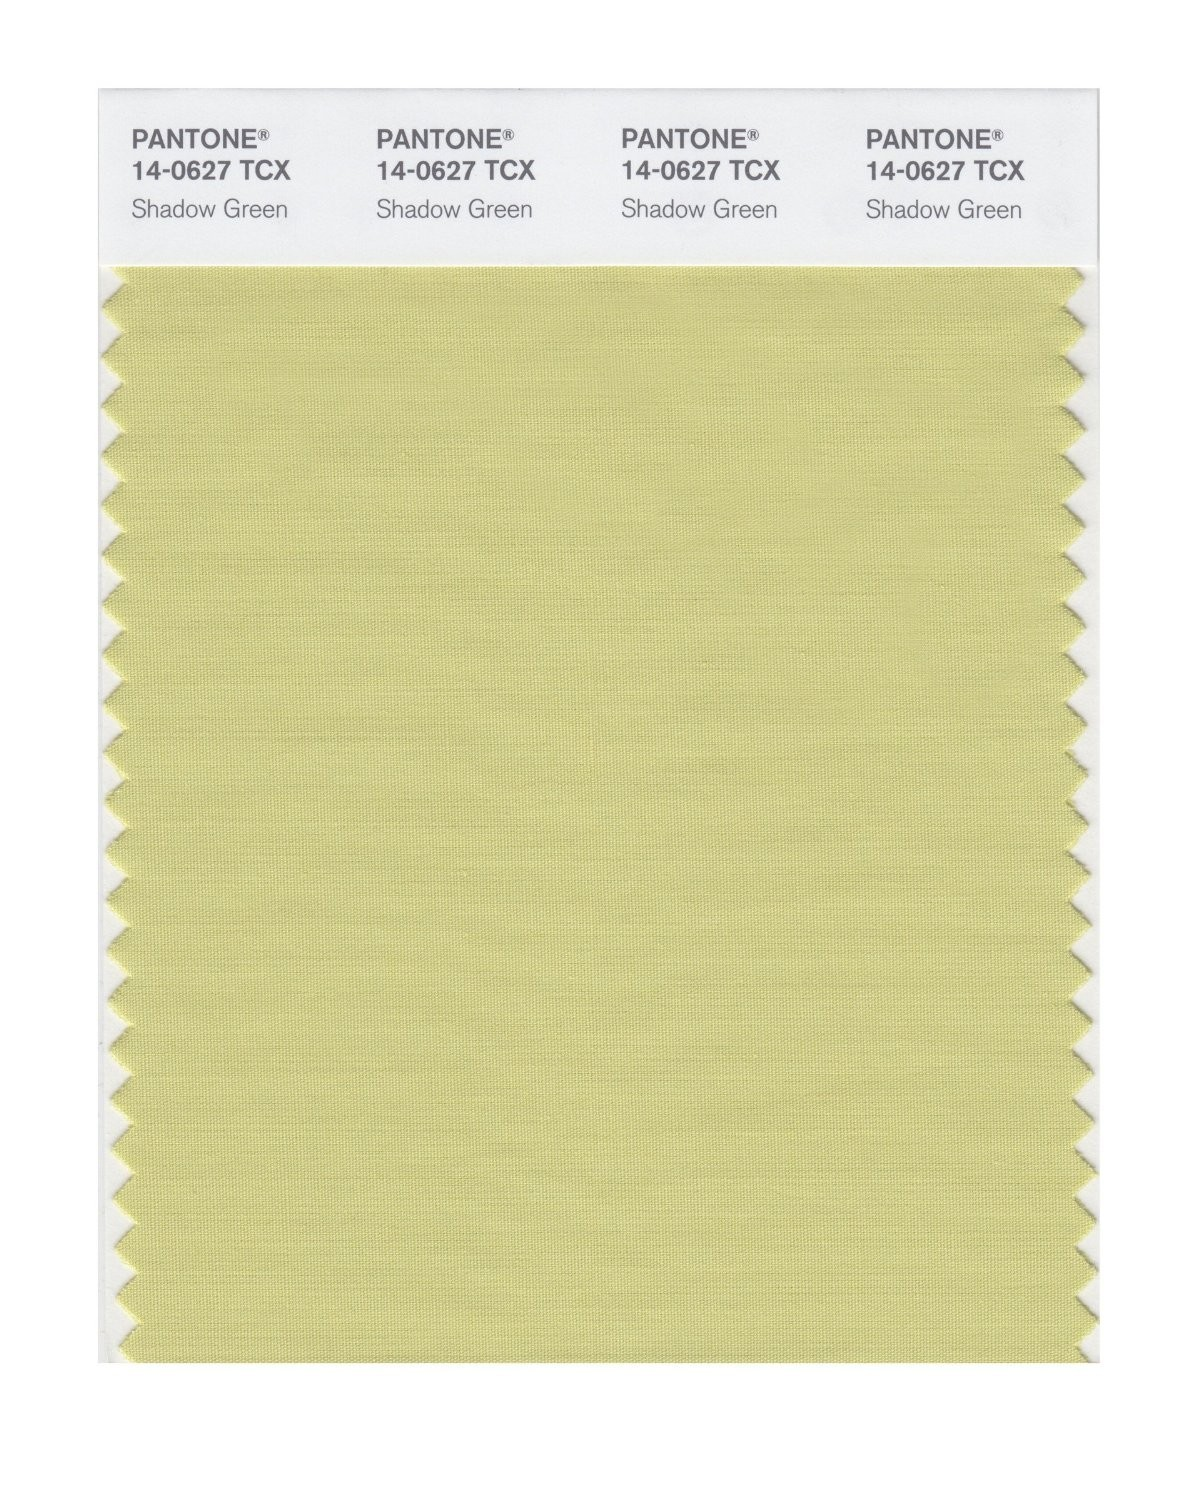 Pantone 14-0627 TCX Swatch Card Shadow Green